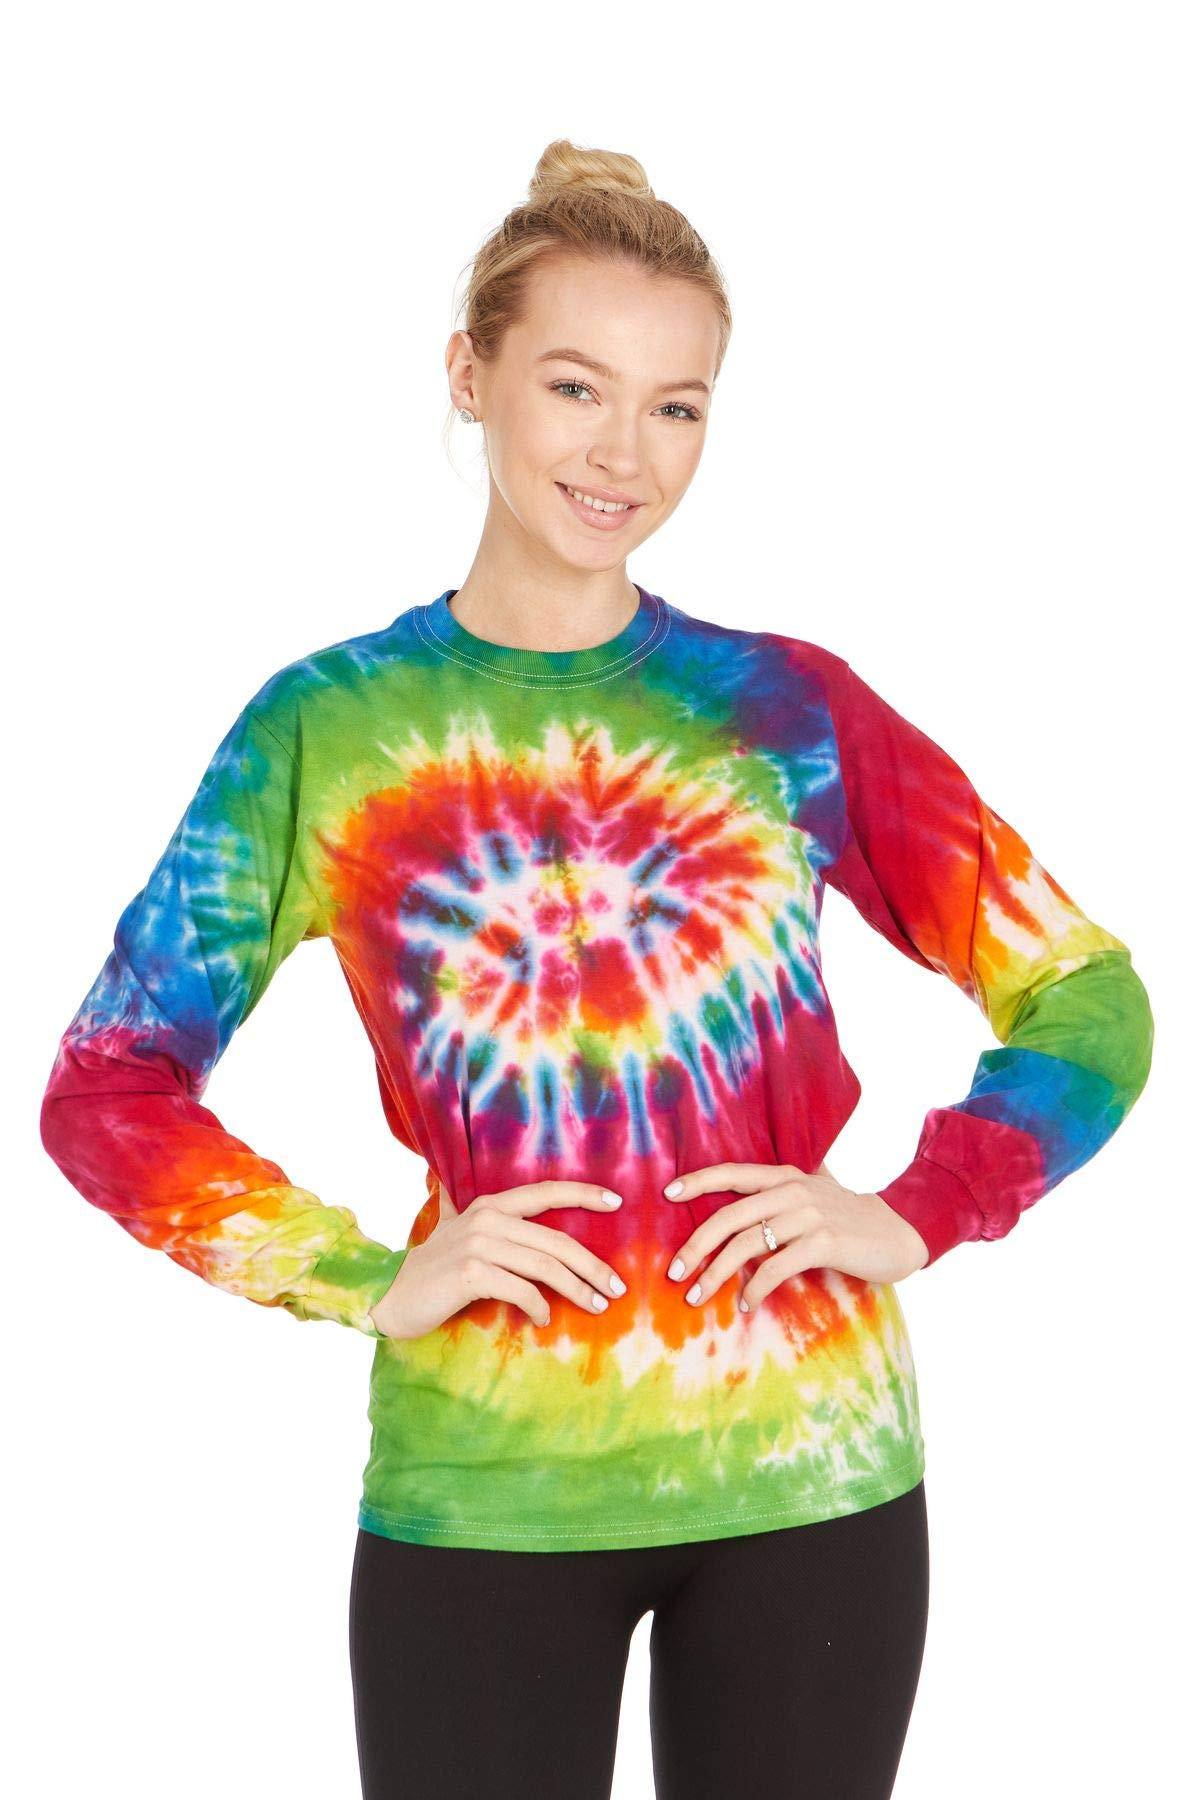 Tie Dye Style Long Sleeve T-Shirt Men Women - Fun, Multi Color Tops